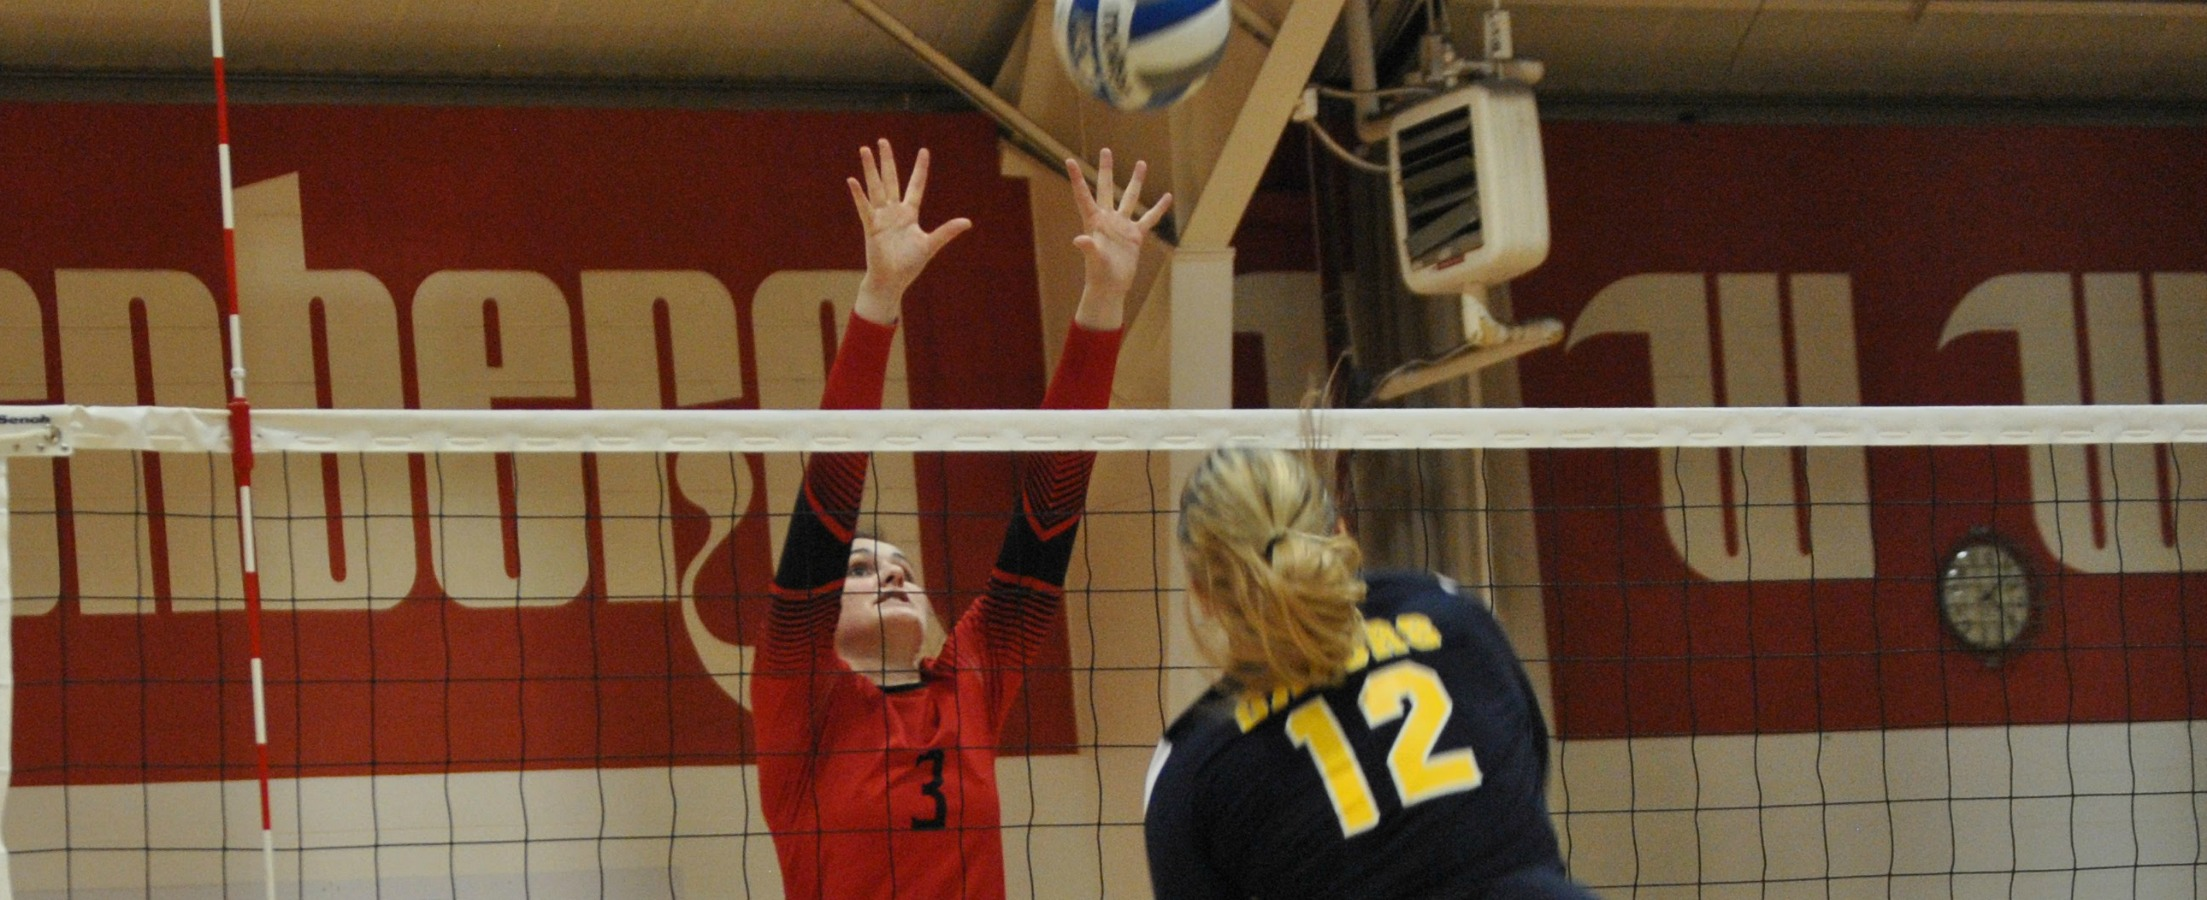 #6 Wittenberg Improves to 2-0 in NCAC Play with 3-0 Win Over Allegheny